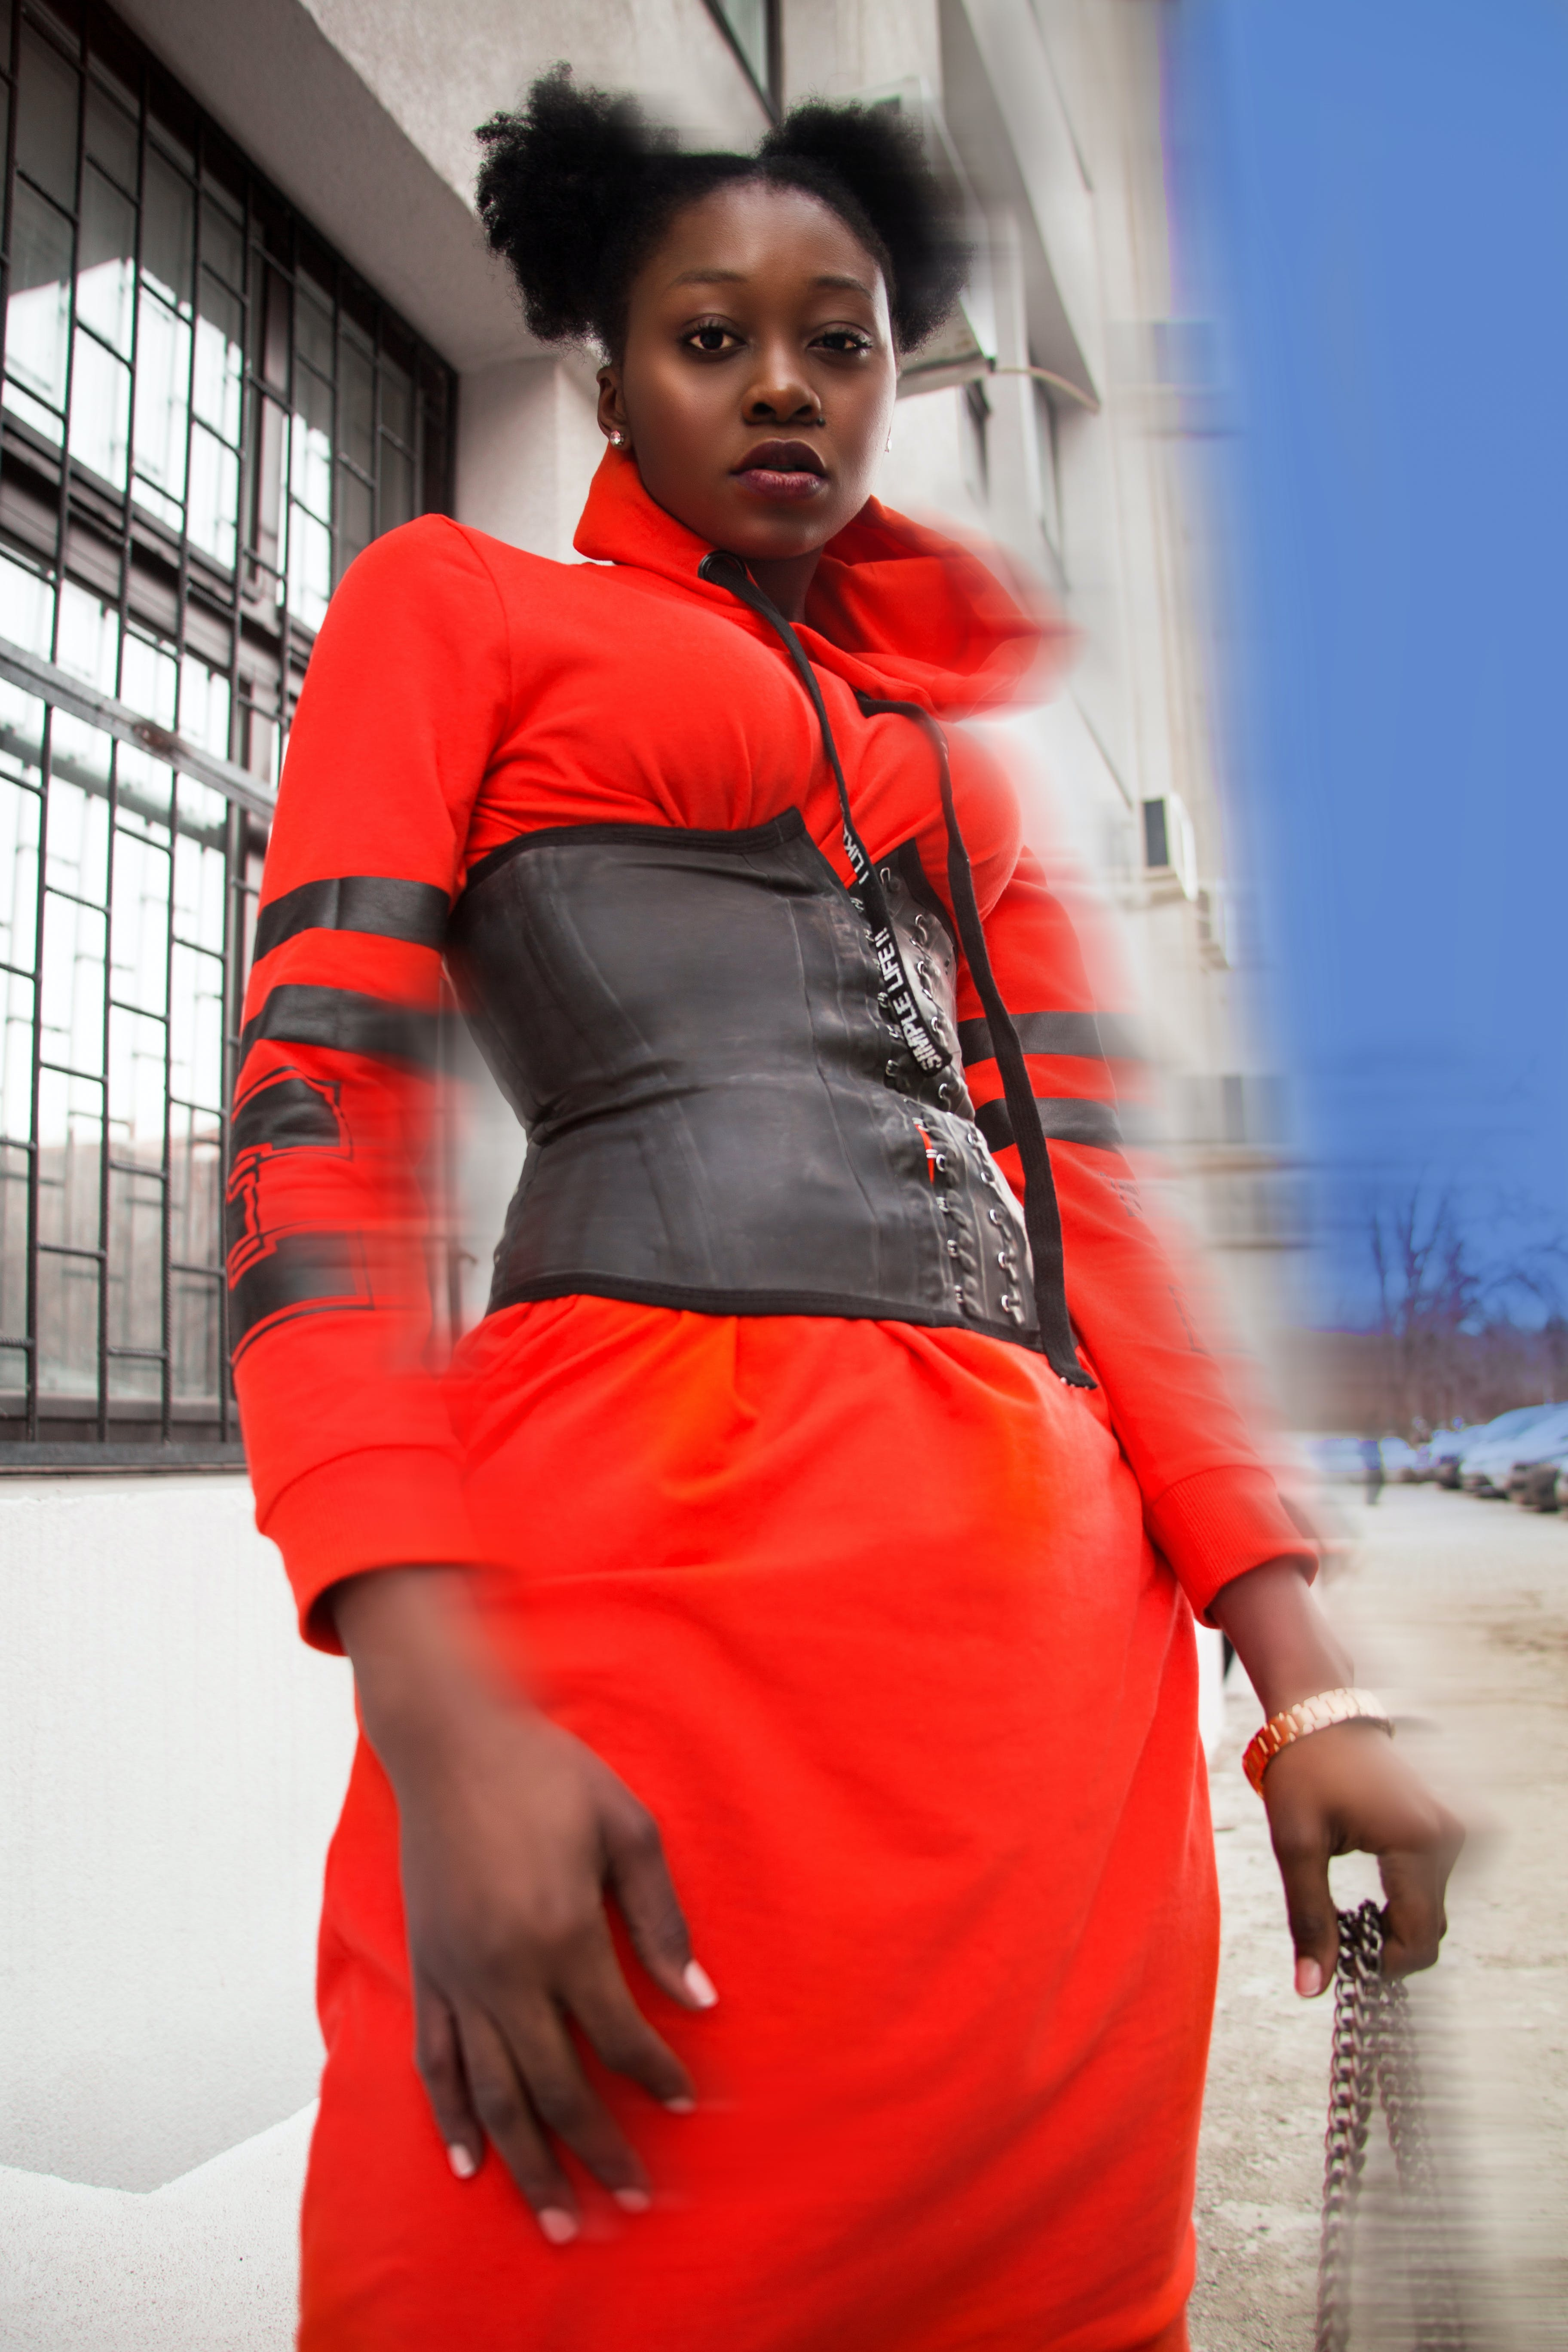 Women's Orange Collared Long-sleeved Dress and Gray Corset